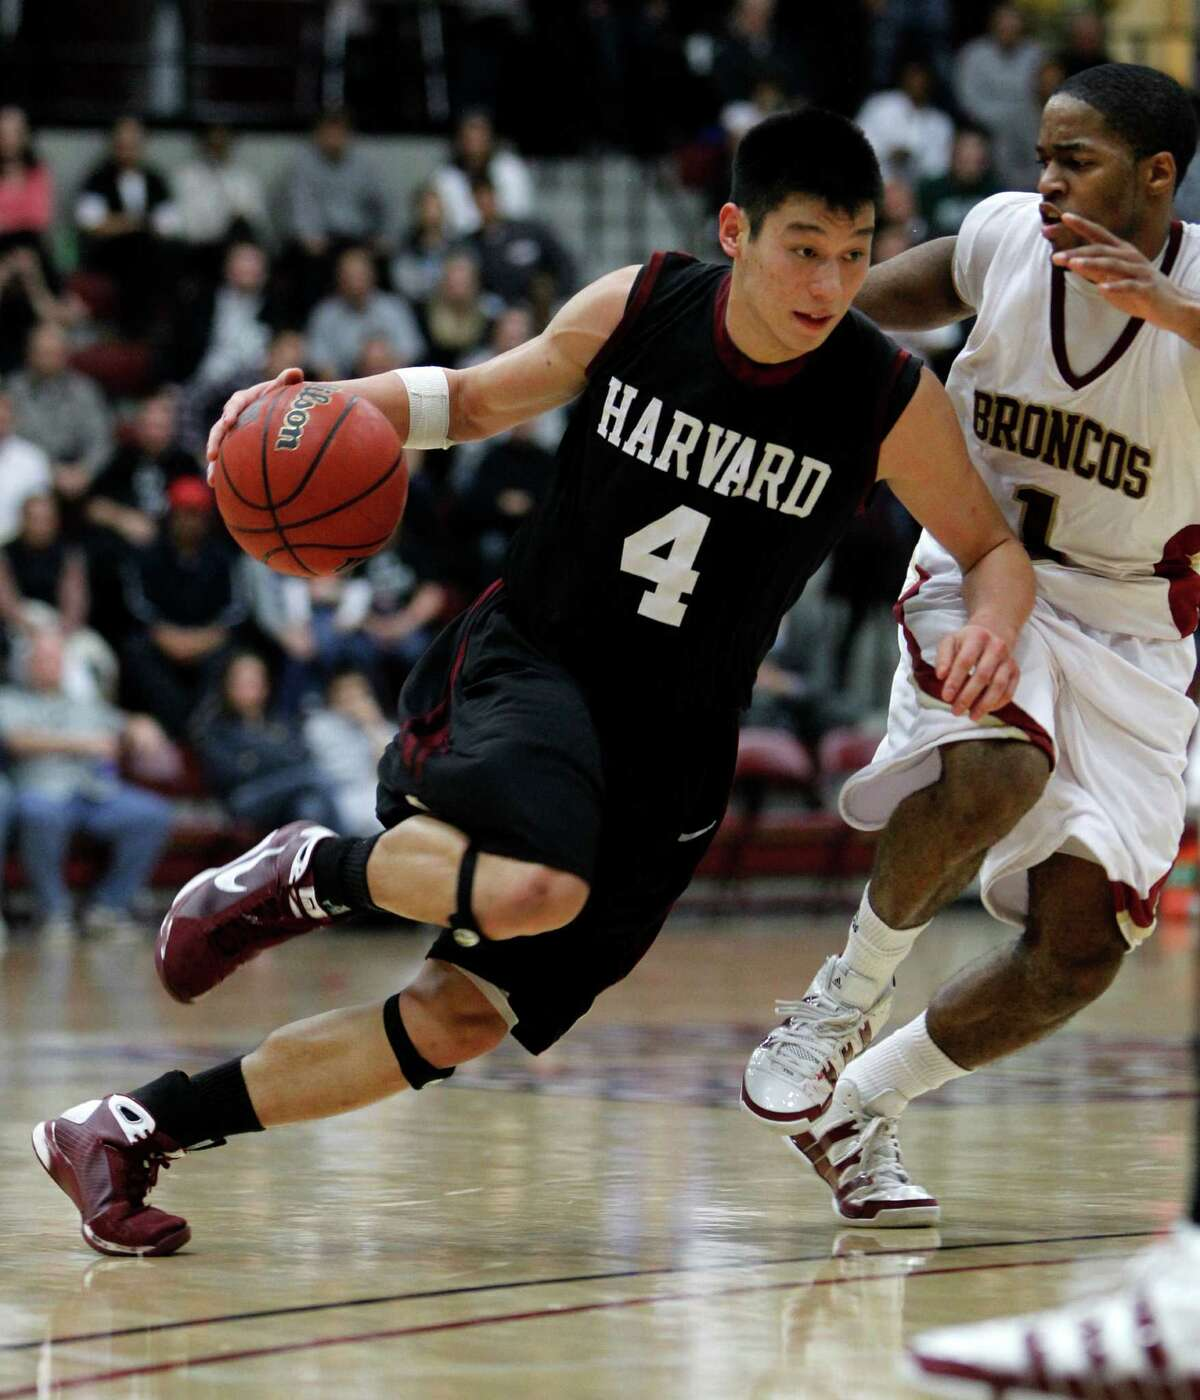 Before Jeremy Lin got his first pro contract, with the Golden State Warriors, ran the offense for the Harvard Crimson.